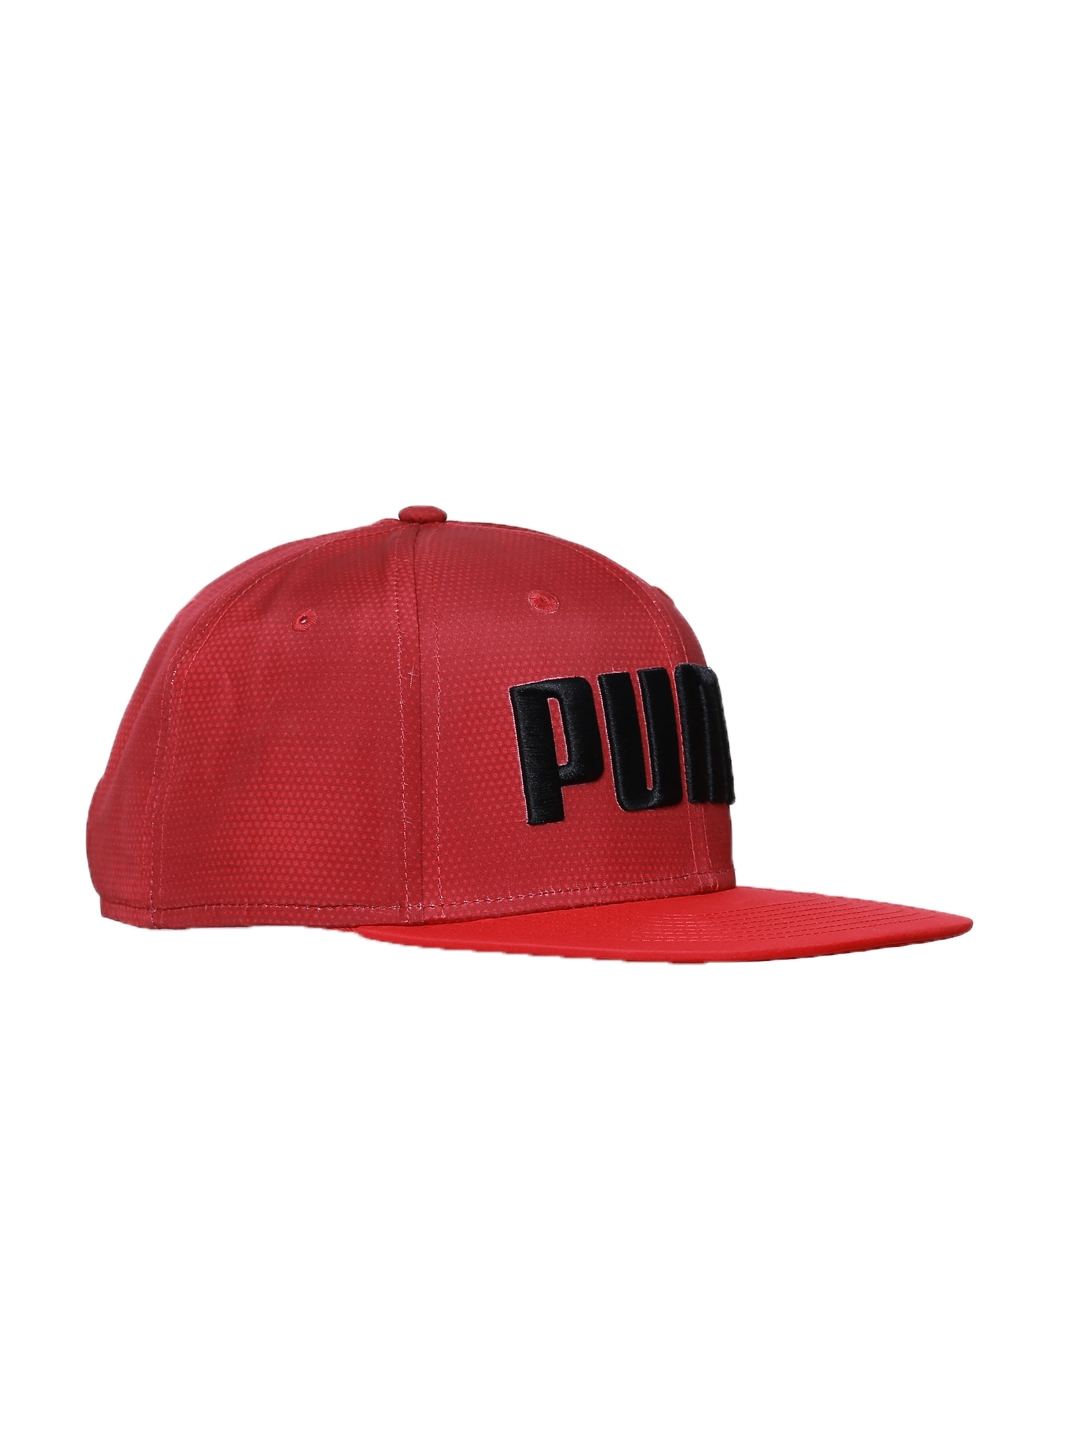 79d733cb058 Buy Puma Unisex Red ESS Flatbrim Cap - Caps for Unisex 2197393